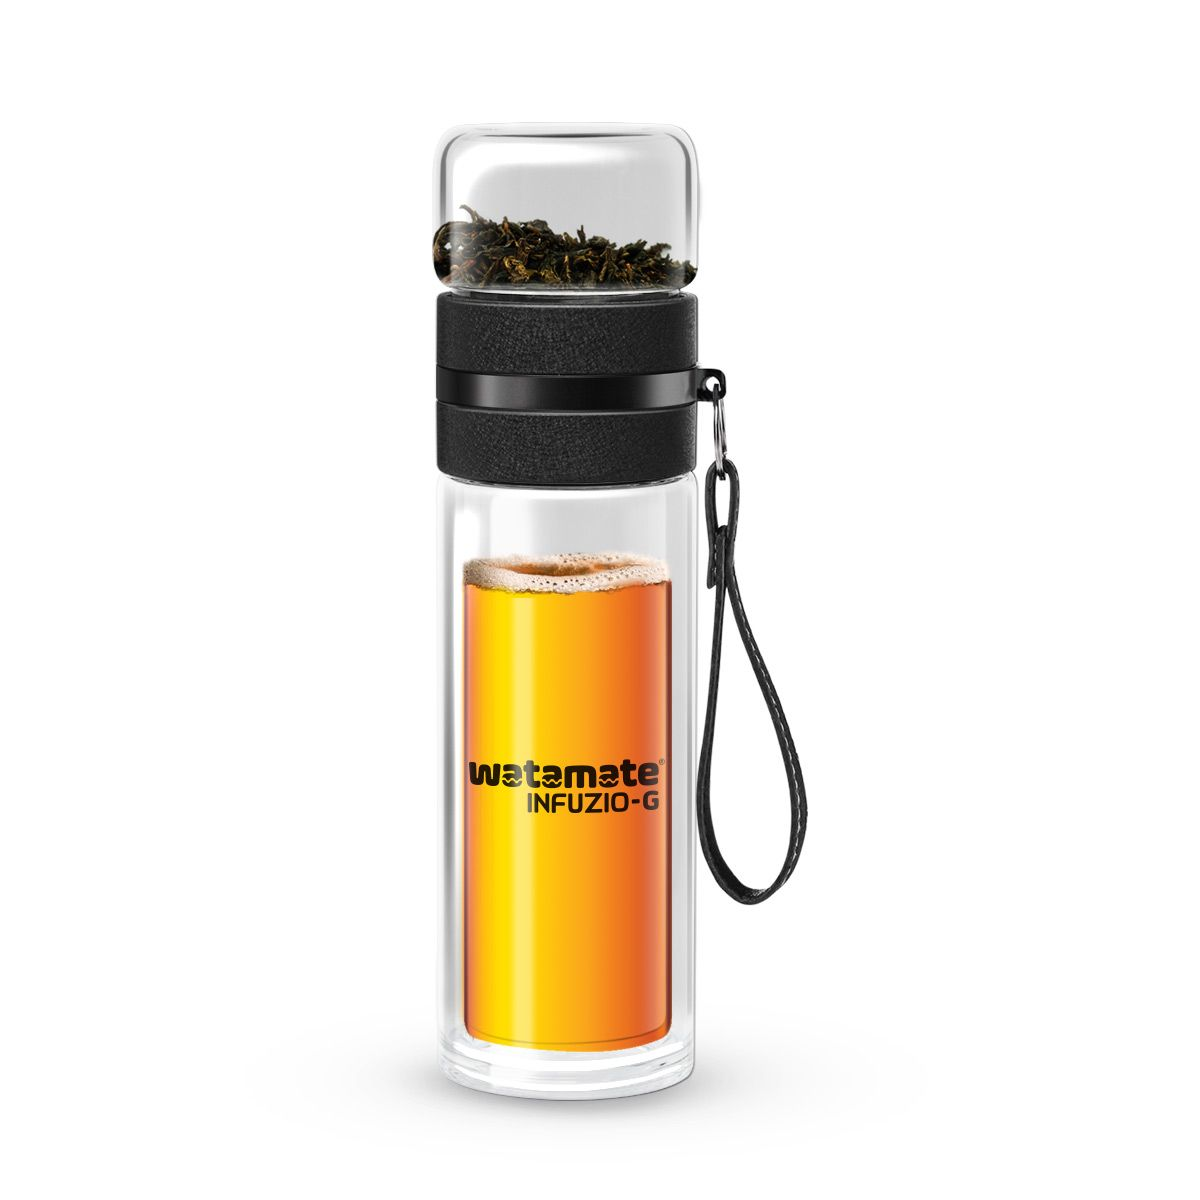 Watamate Infuzio-G Double-Wall Glass Infuser Bottle for Green Tea or Fruit Infusion Drinks (300ml)